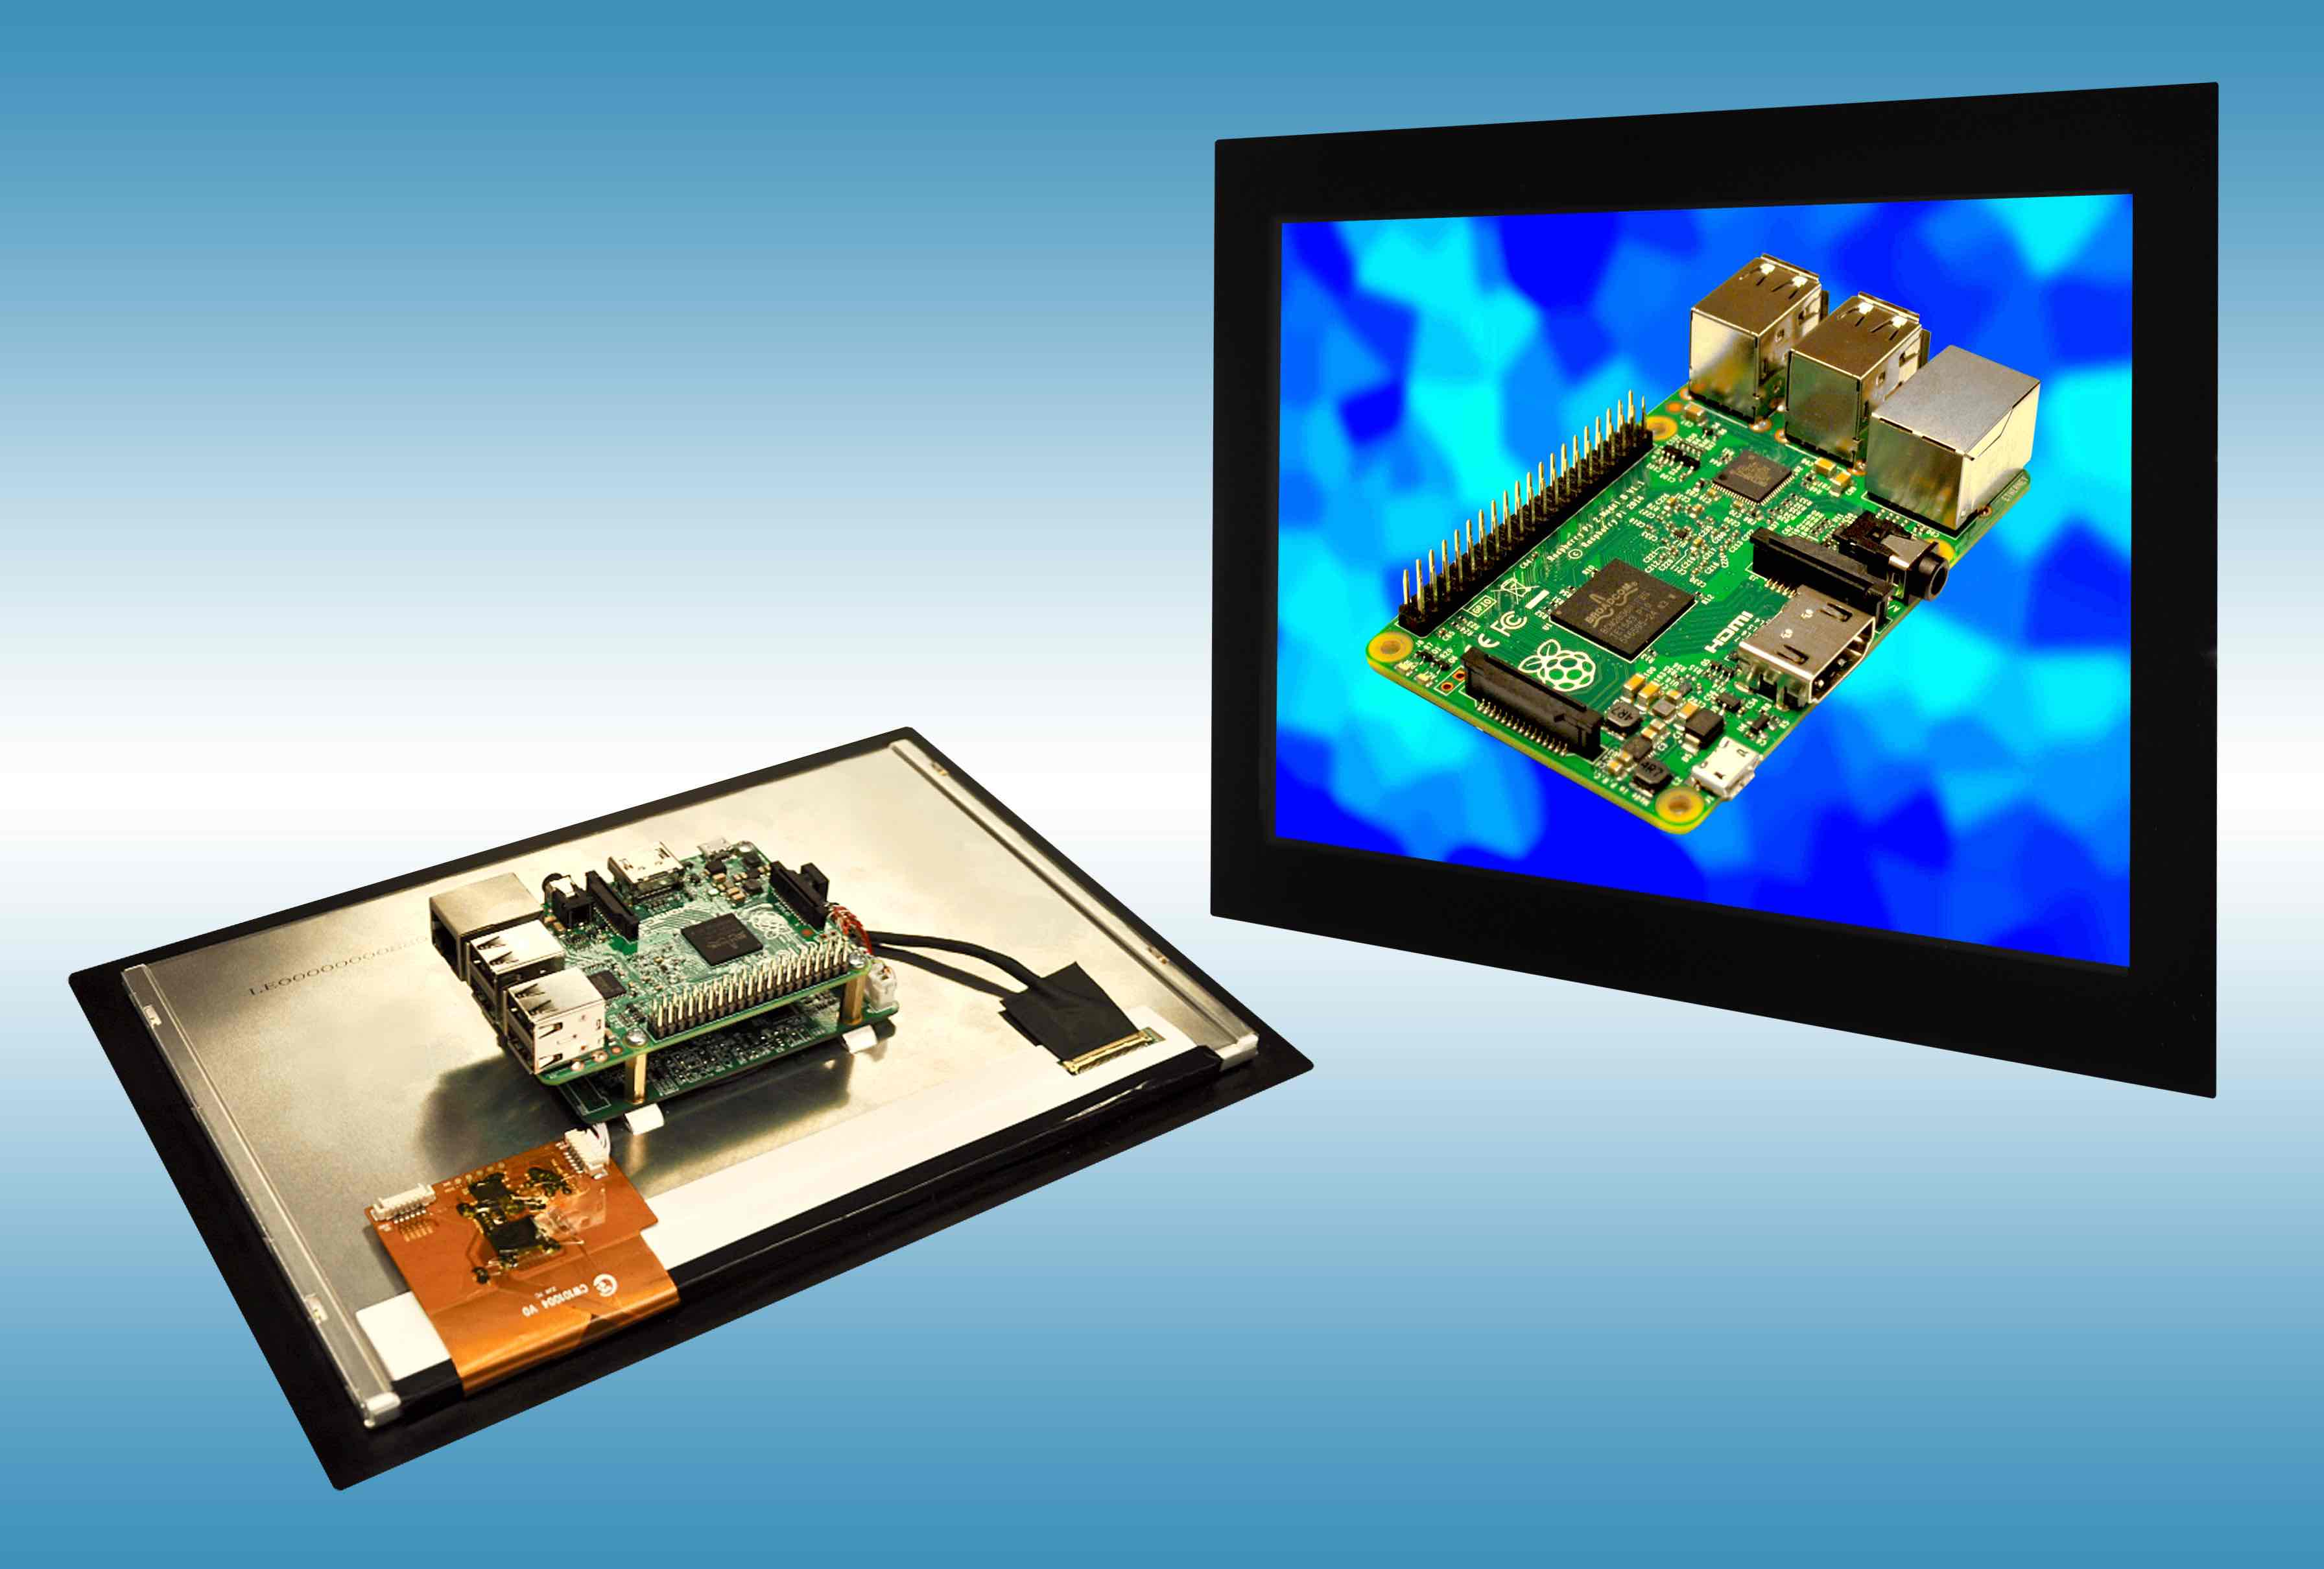 Raspberry Pi gets 10 1-inch industrial grade touch screen